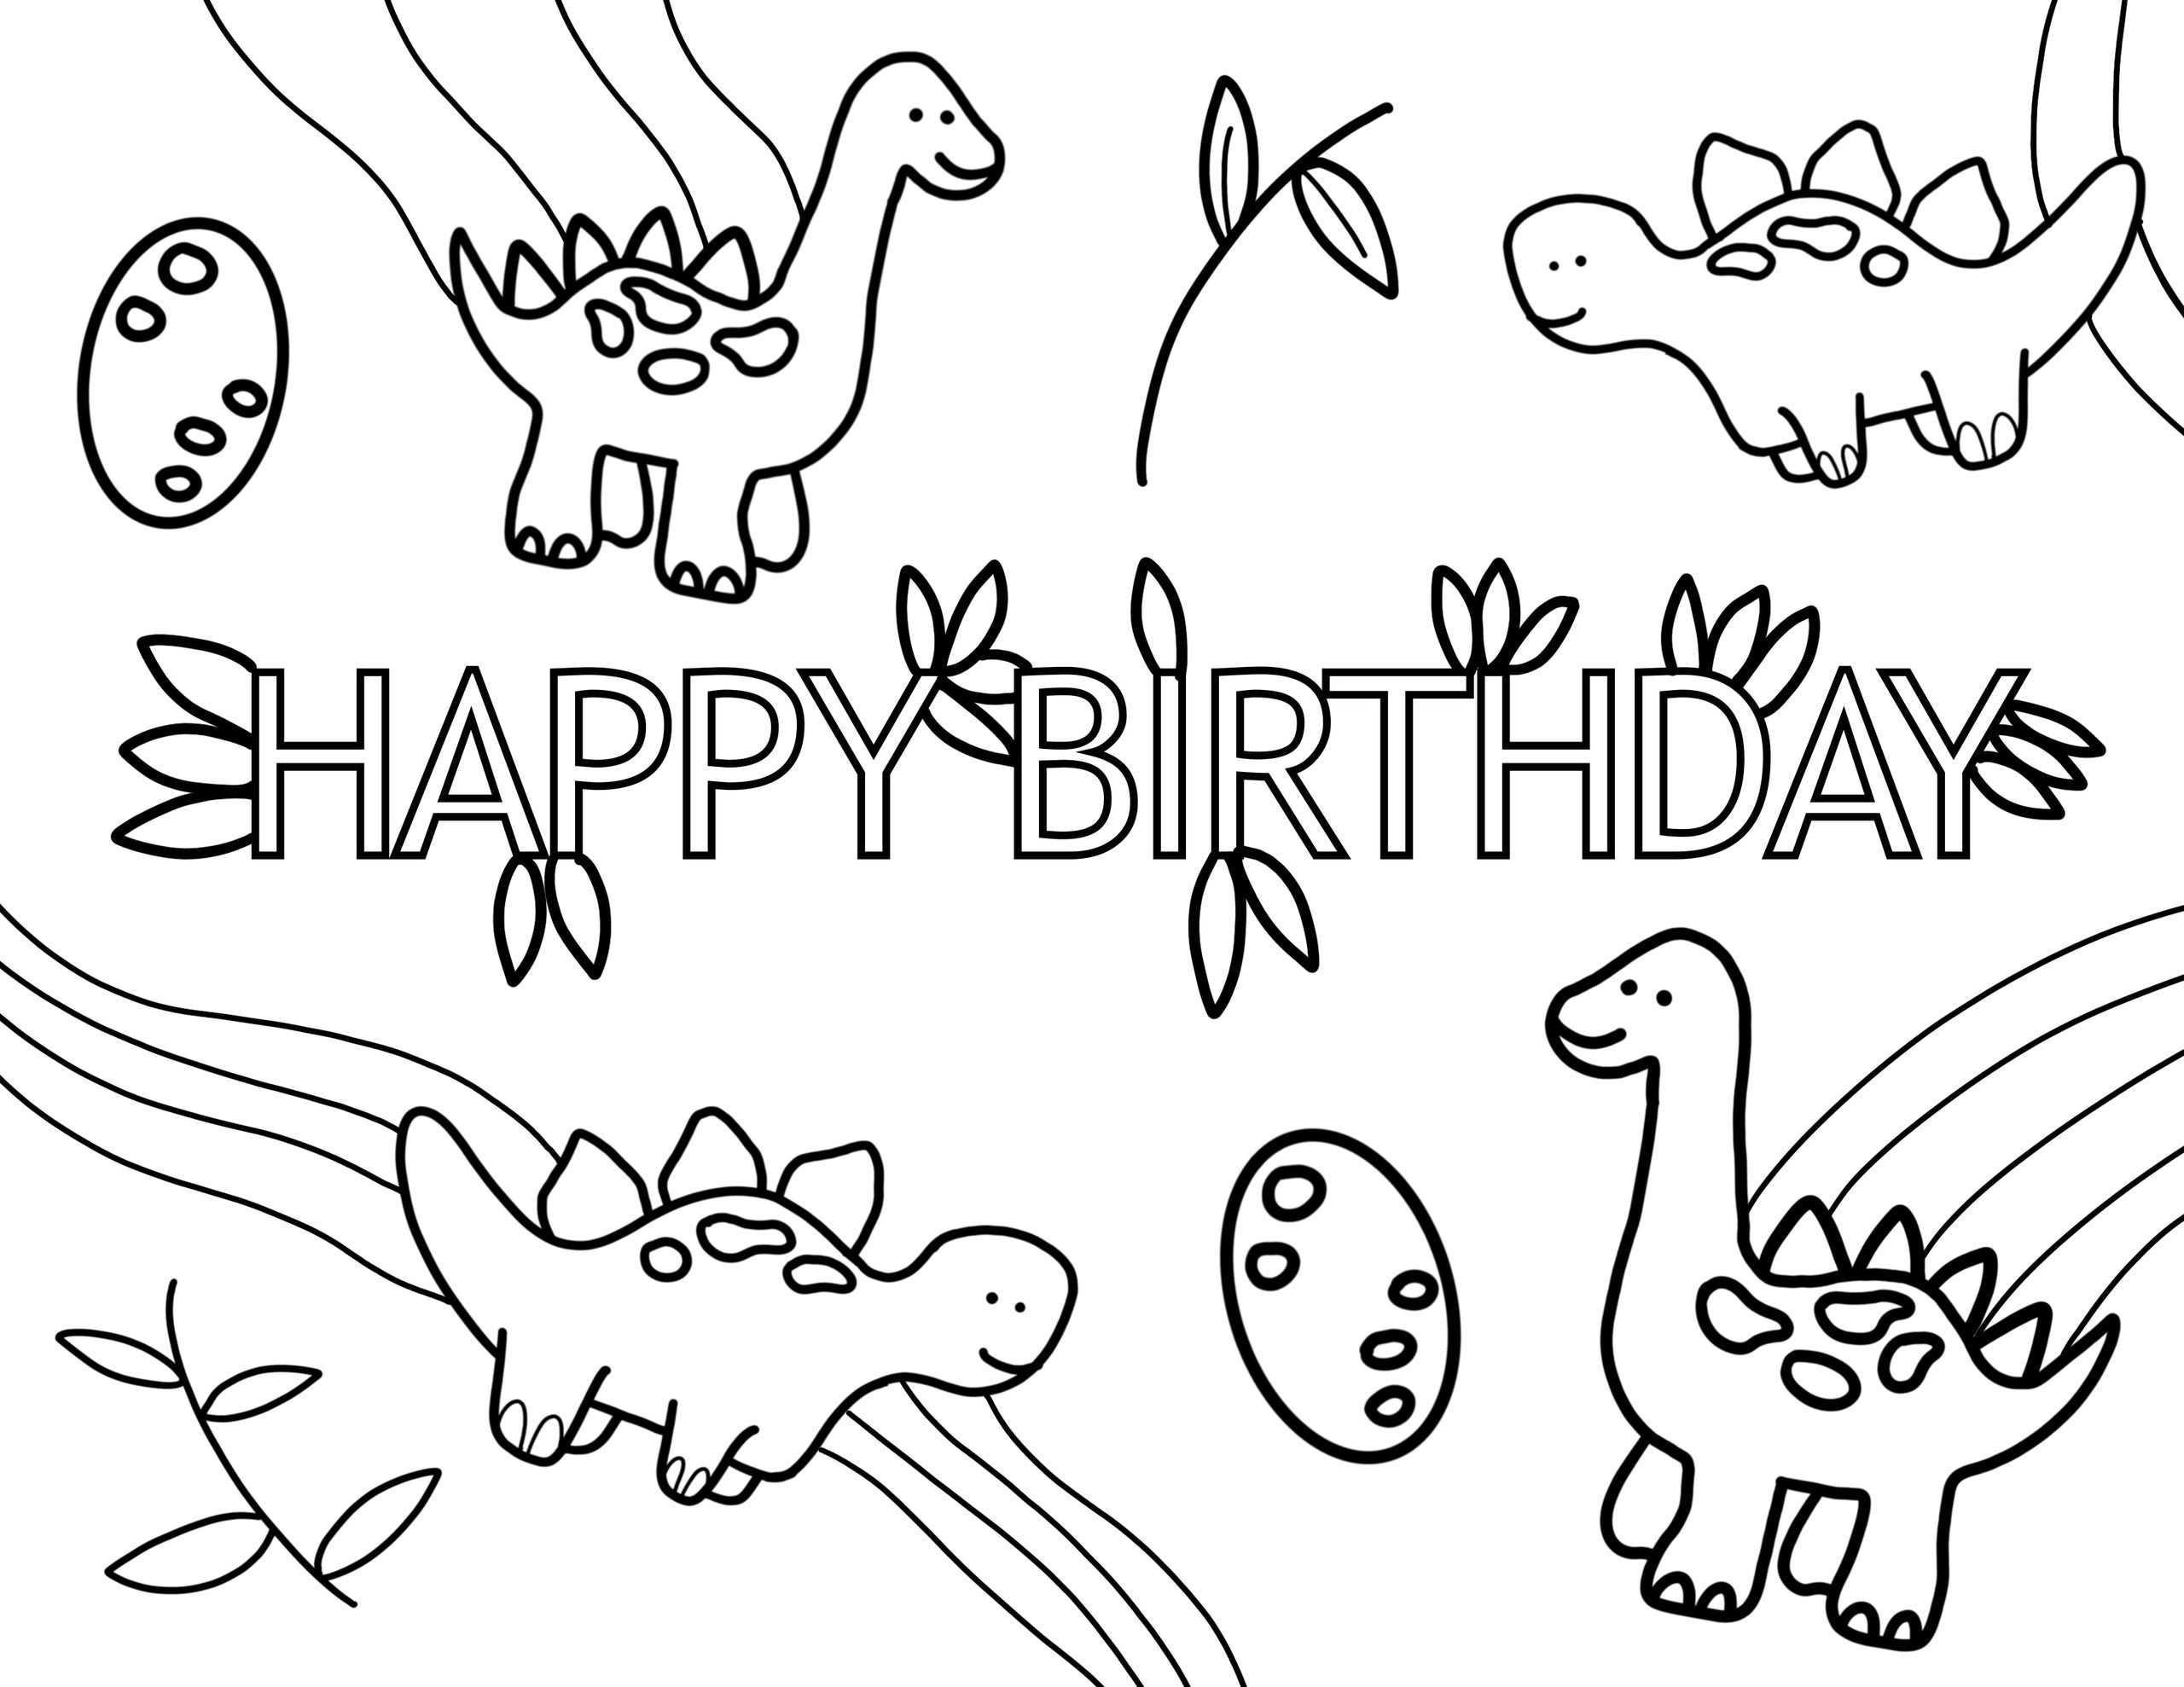 happy birthday coloring page dinosaur Dino party